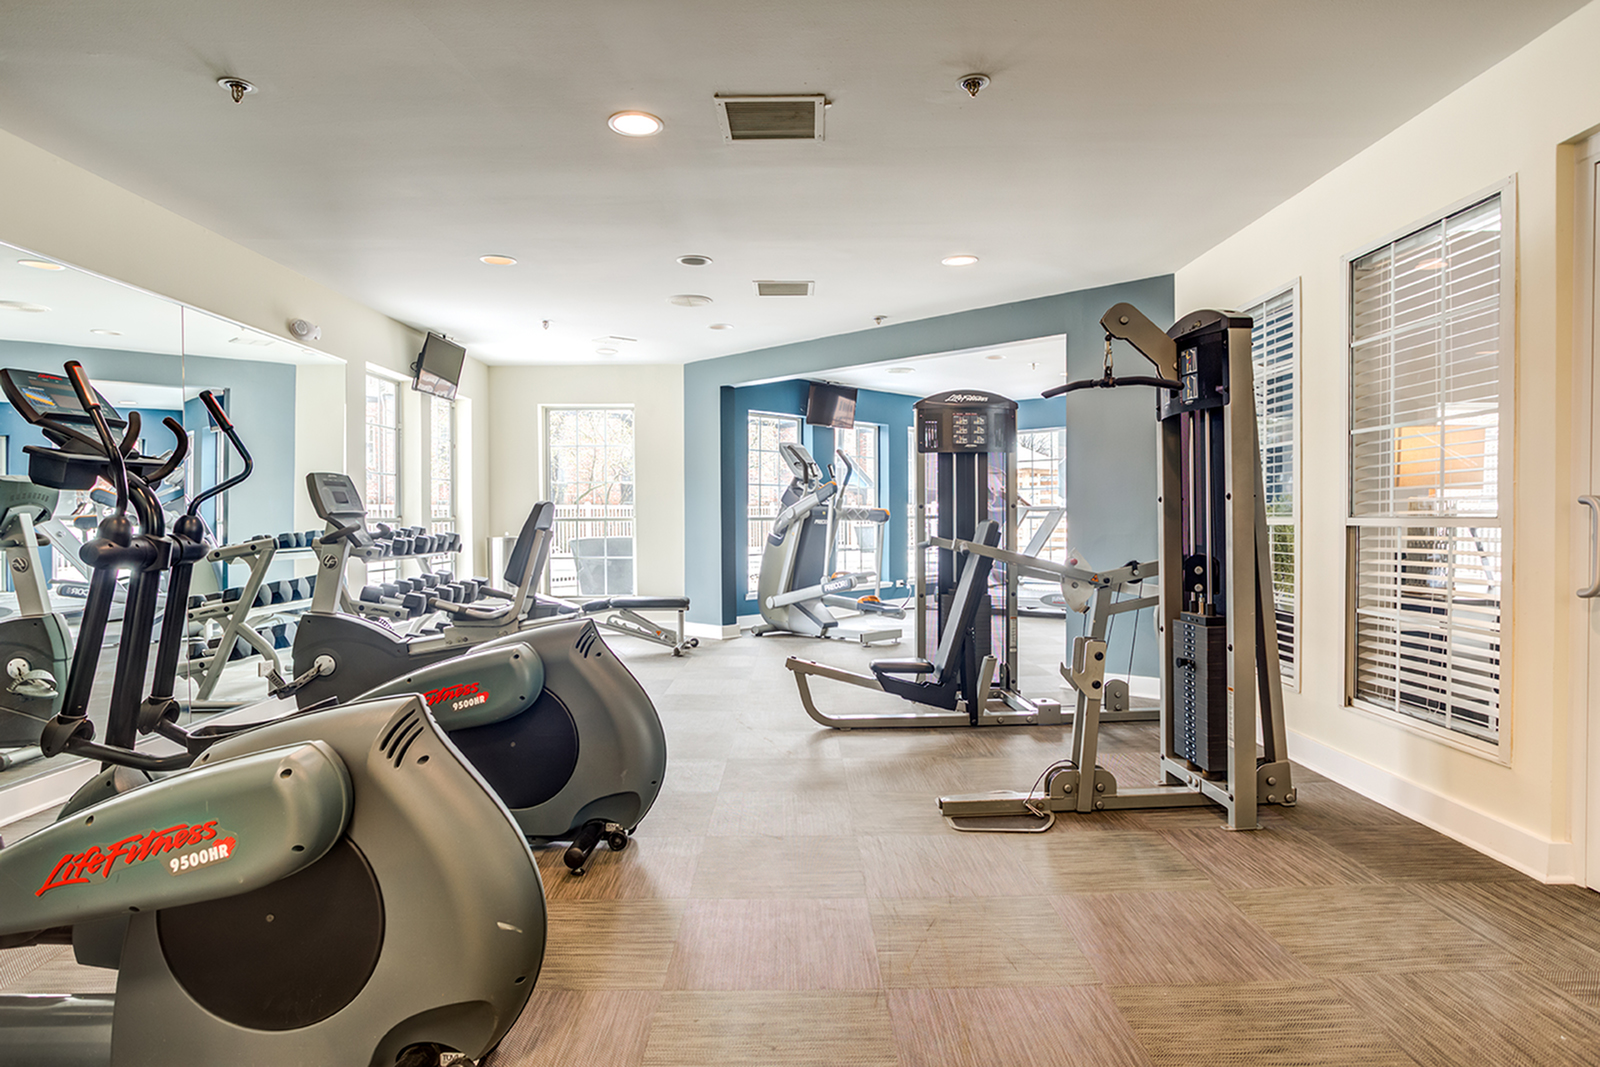 Fitness center with cardio and weight machines